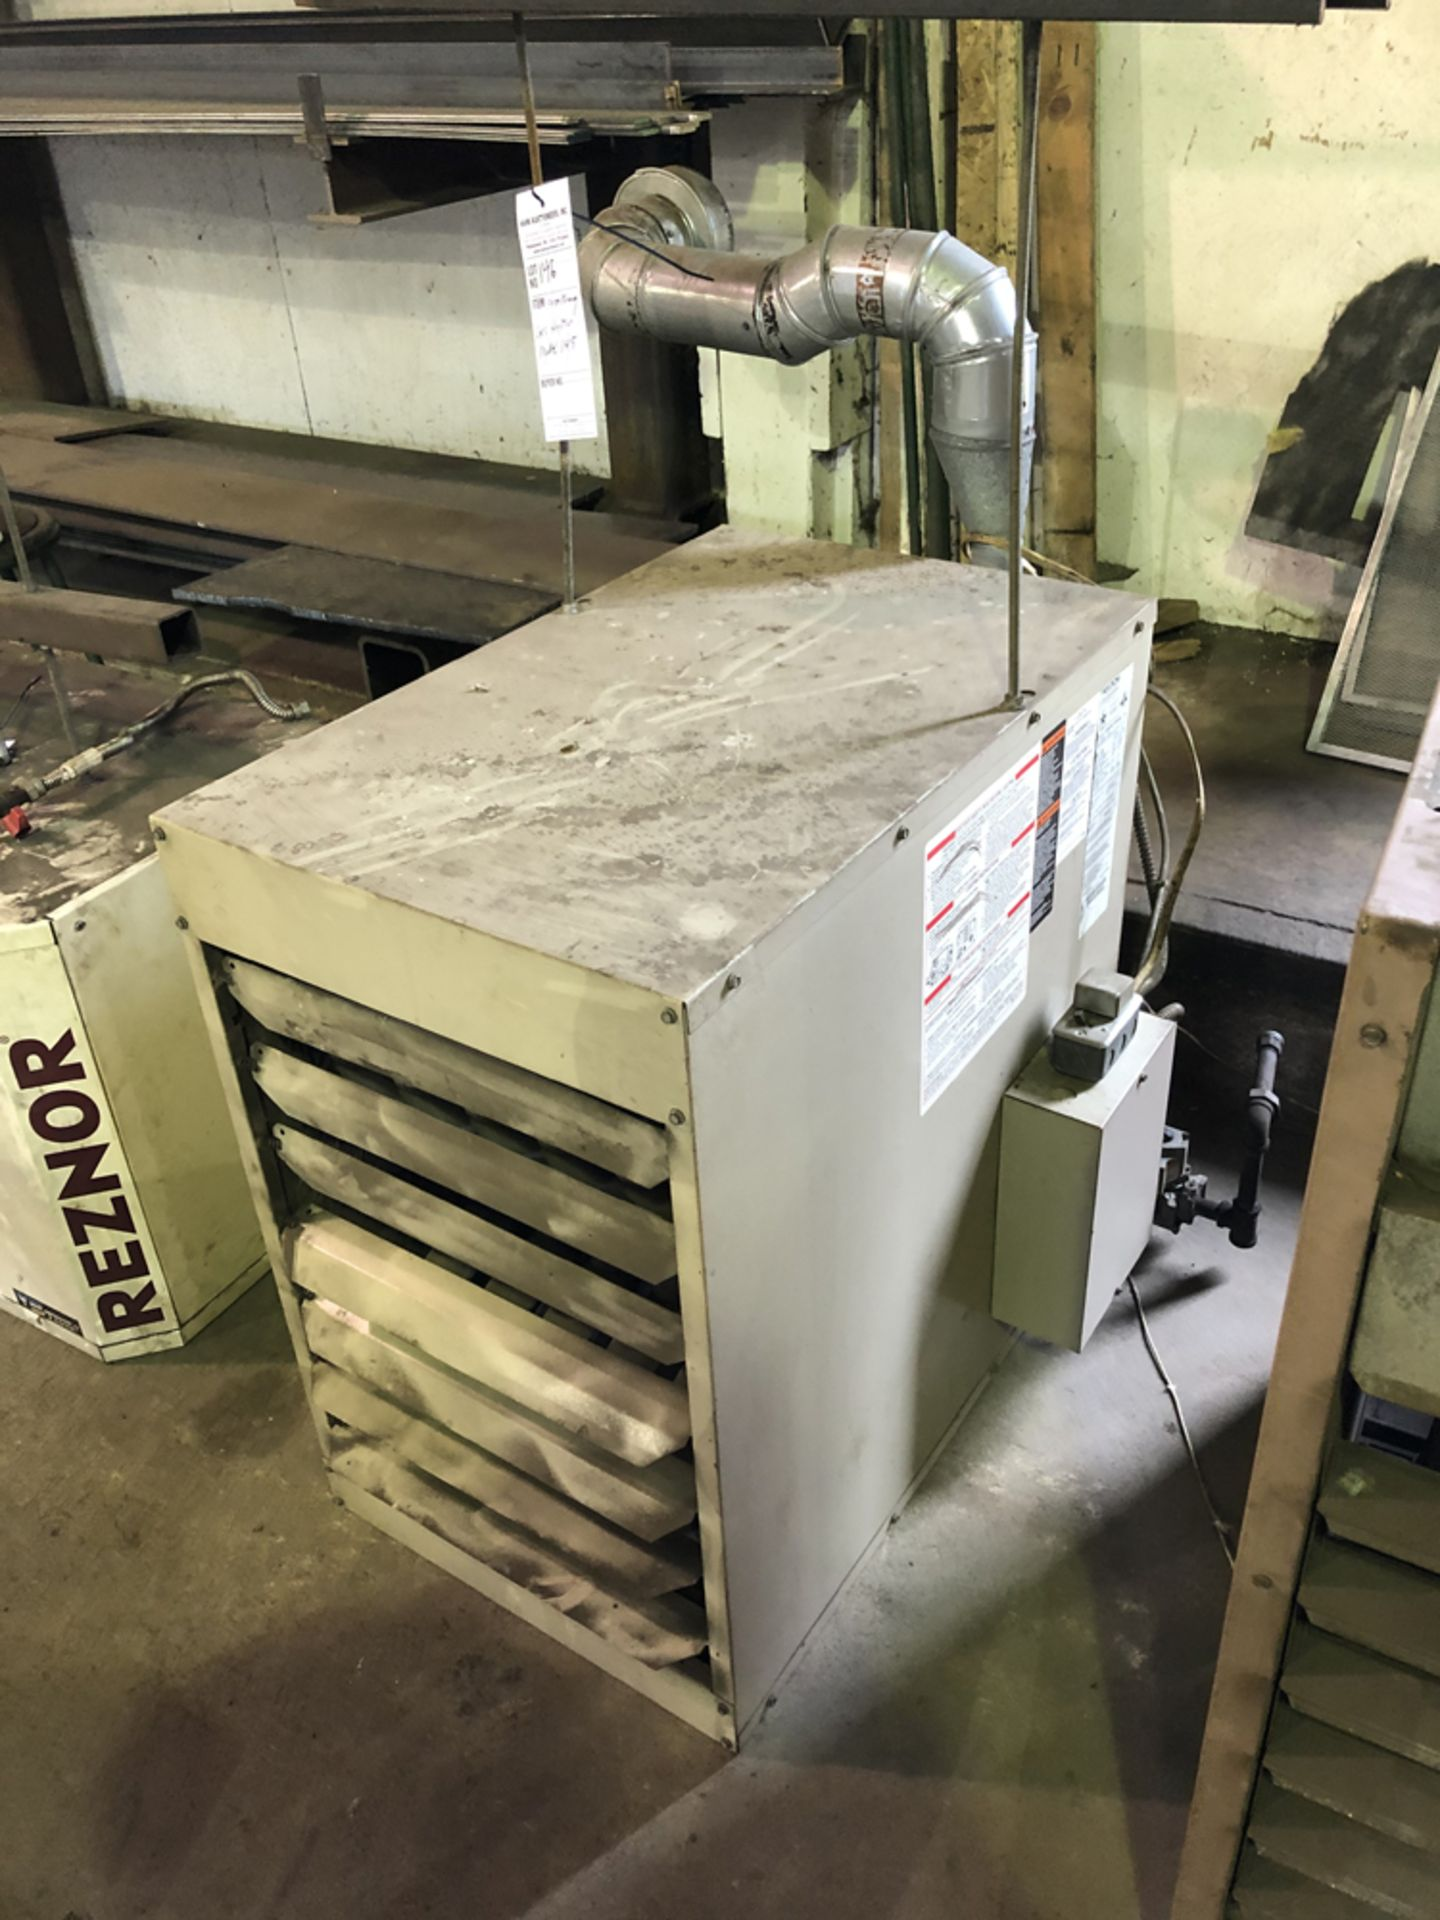 Lot 146 - Armstrong model 145 gas furnace